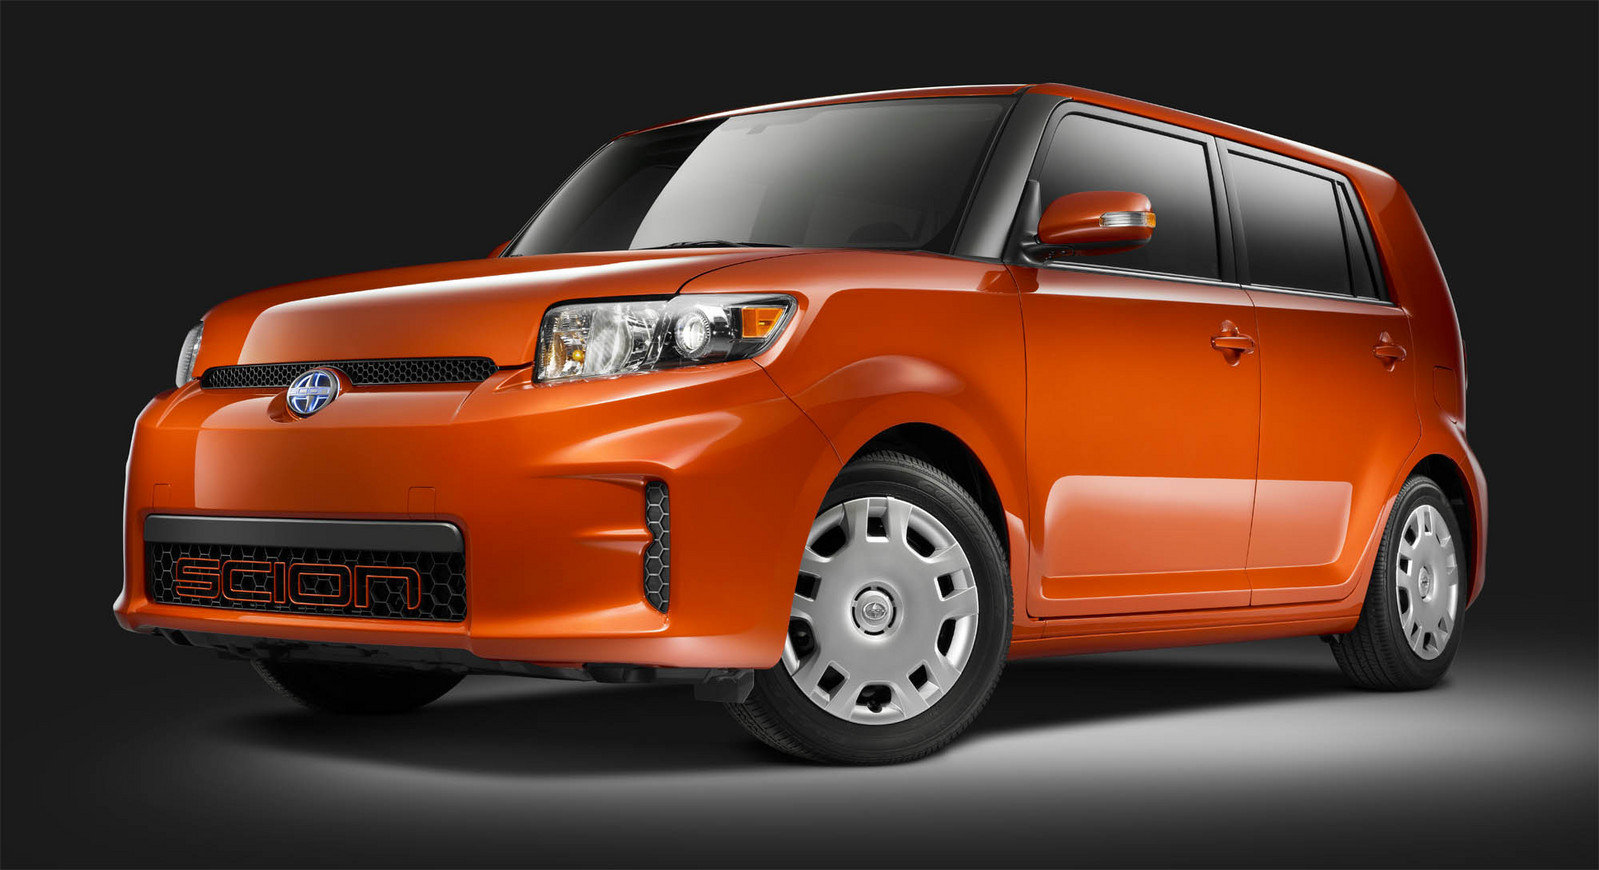 2012 scion xb release series 9 0 review top speed. Black Bedroom Furniture Sets. Home Design Ideas